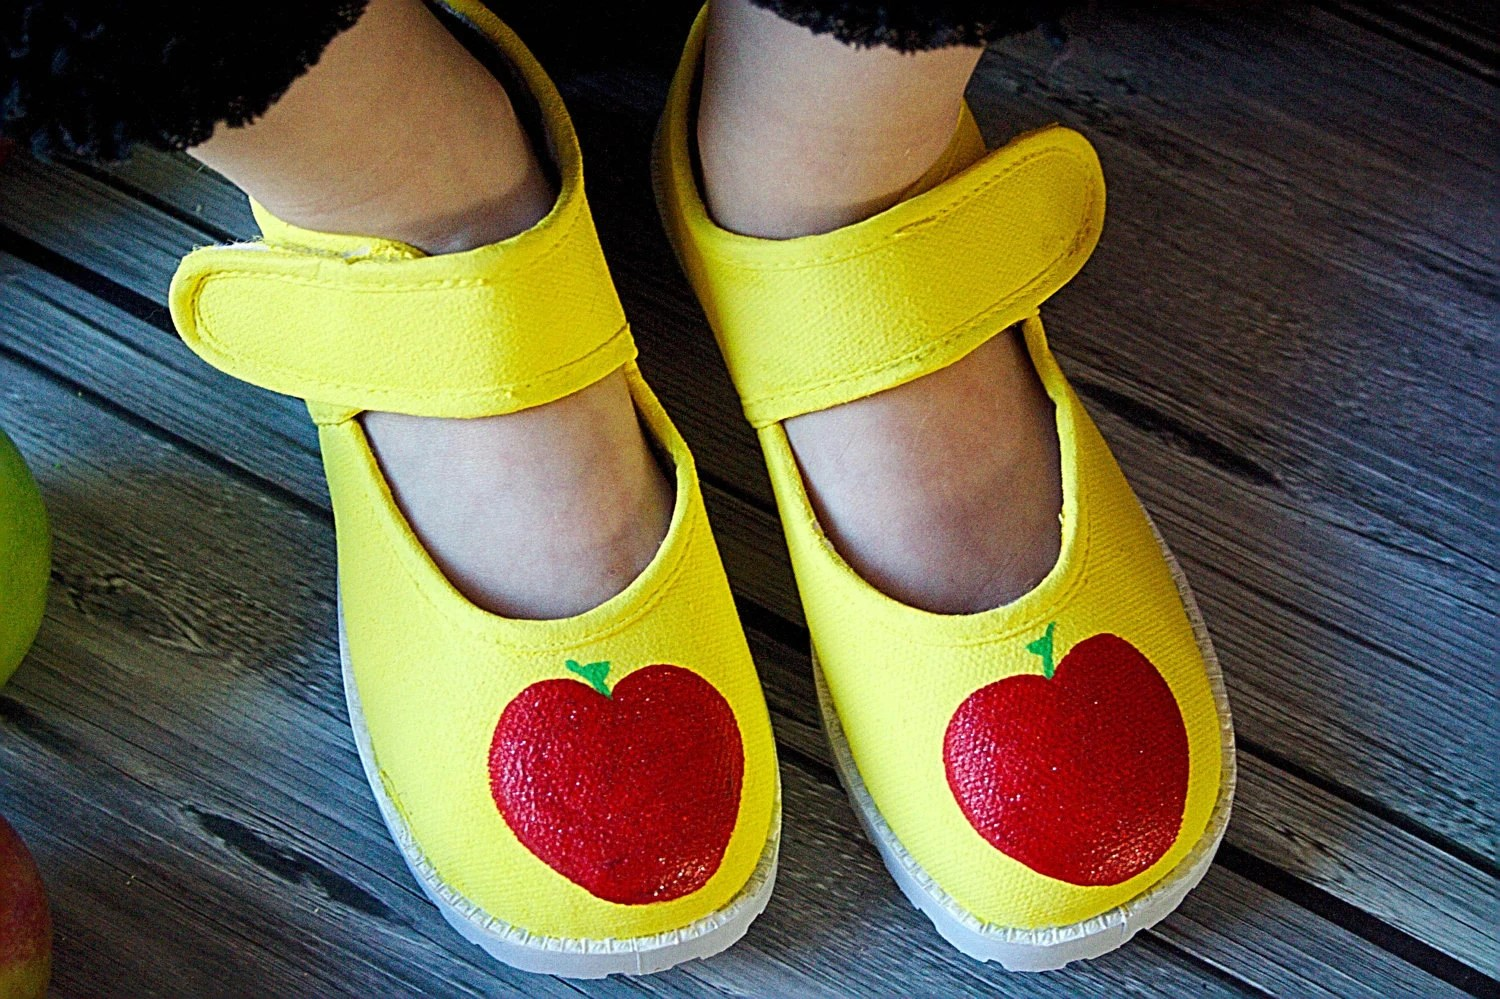 Snow White Apple Shoes - Fully Hand painted red apples on yellow  maryjane shoe for girls - baby or toddler  Disney Shoes